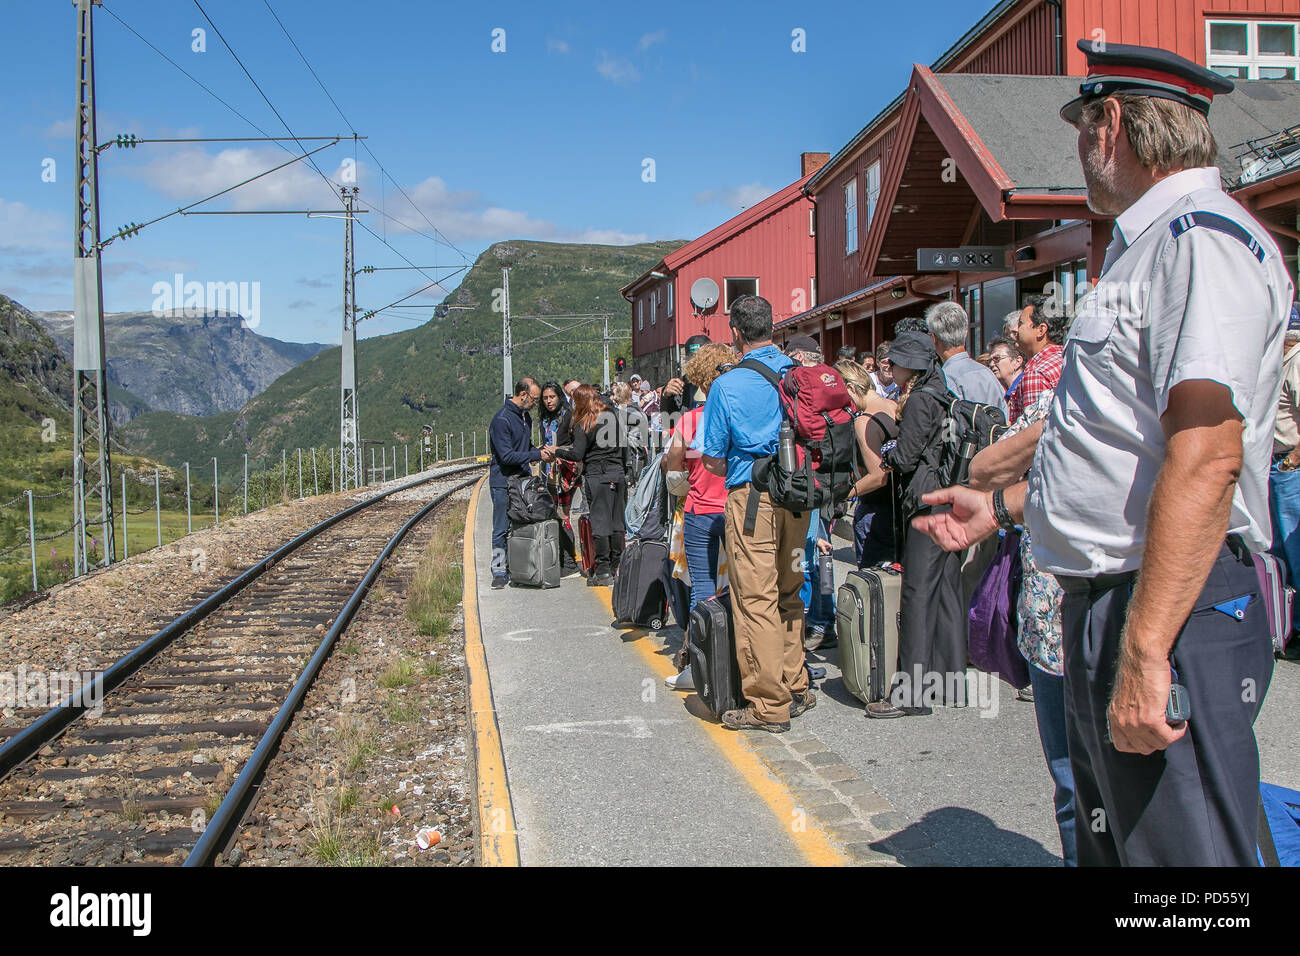 Myrdal, Norway, July 22, 2018: Passengers are waiting at the platform for their Flam Railway train to arrive. The train will descend to Flam. - Stock Image